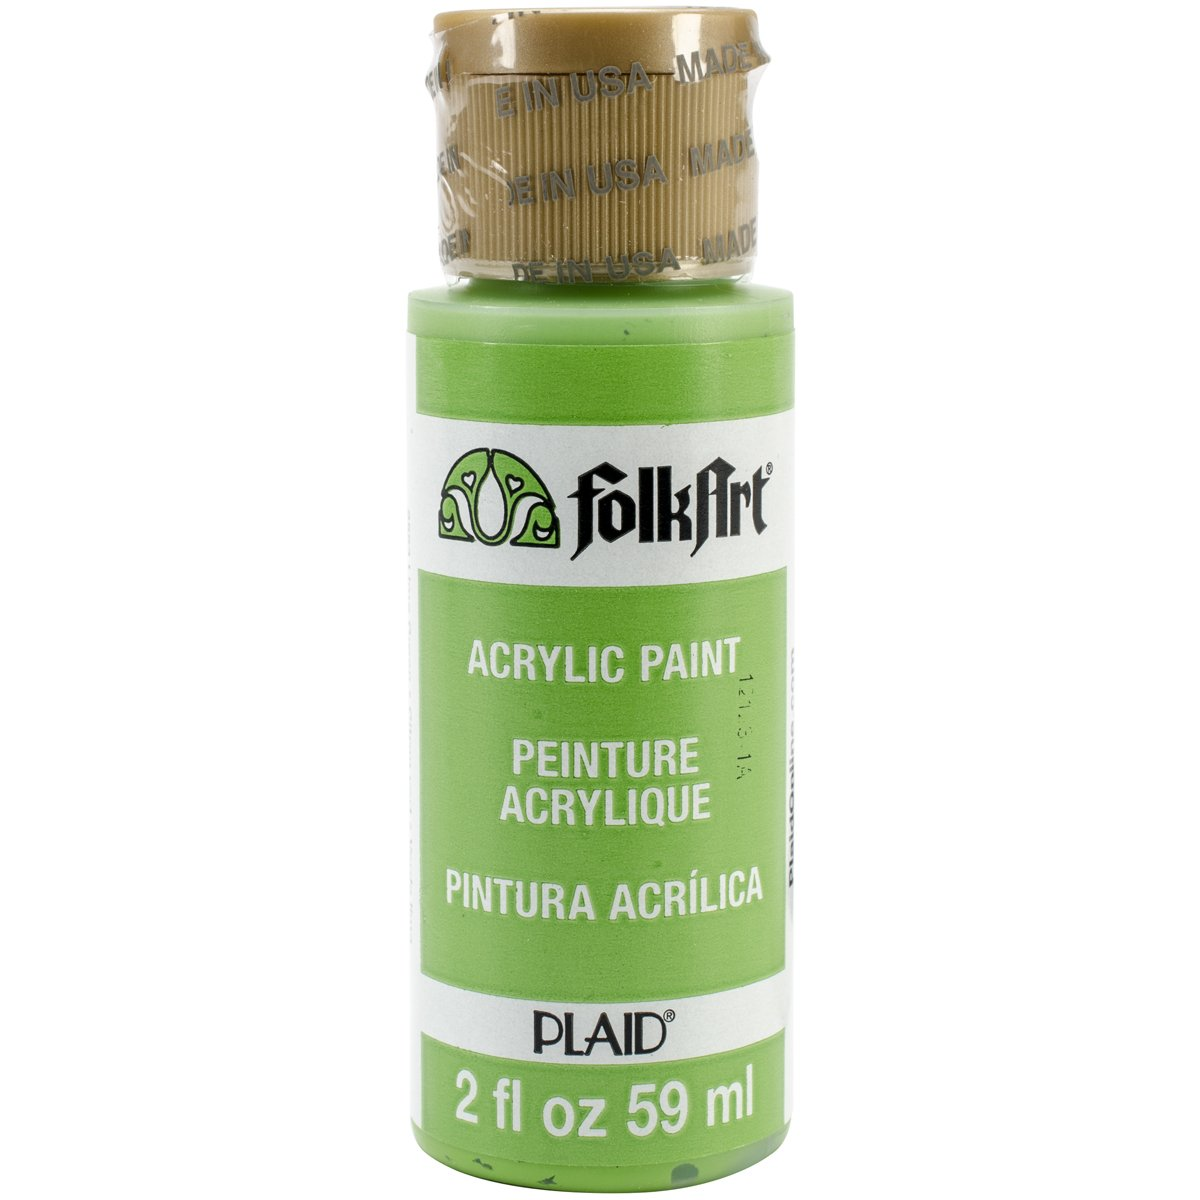 FolkArt Acrylic Paint in Assorted Colors (2 oz), 2553, Lime Green